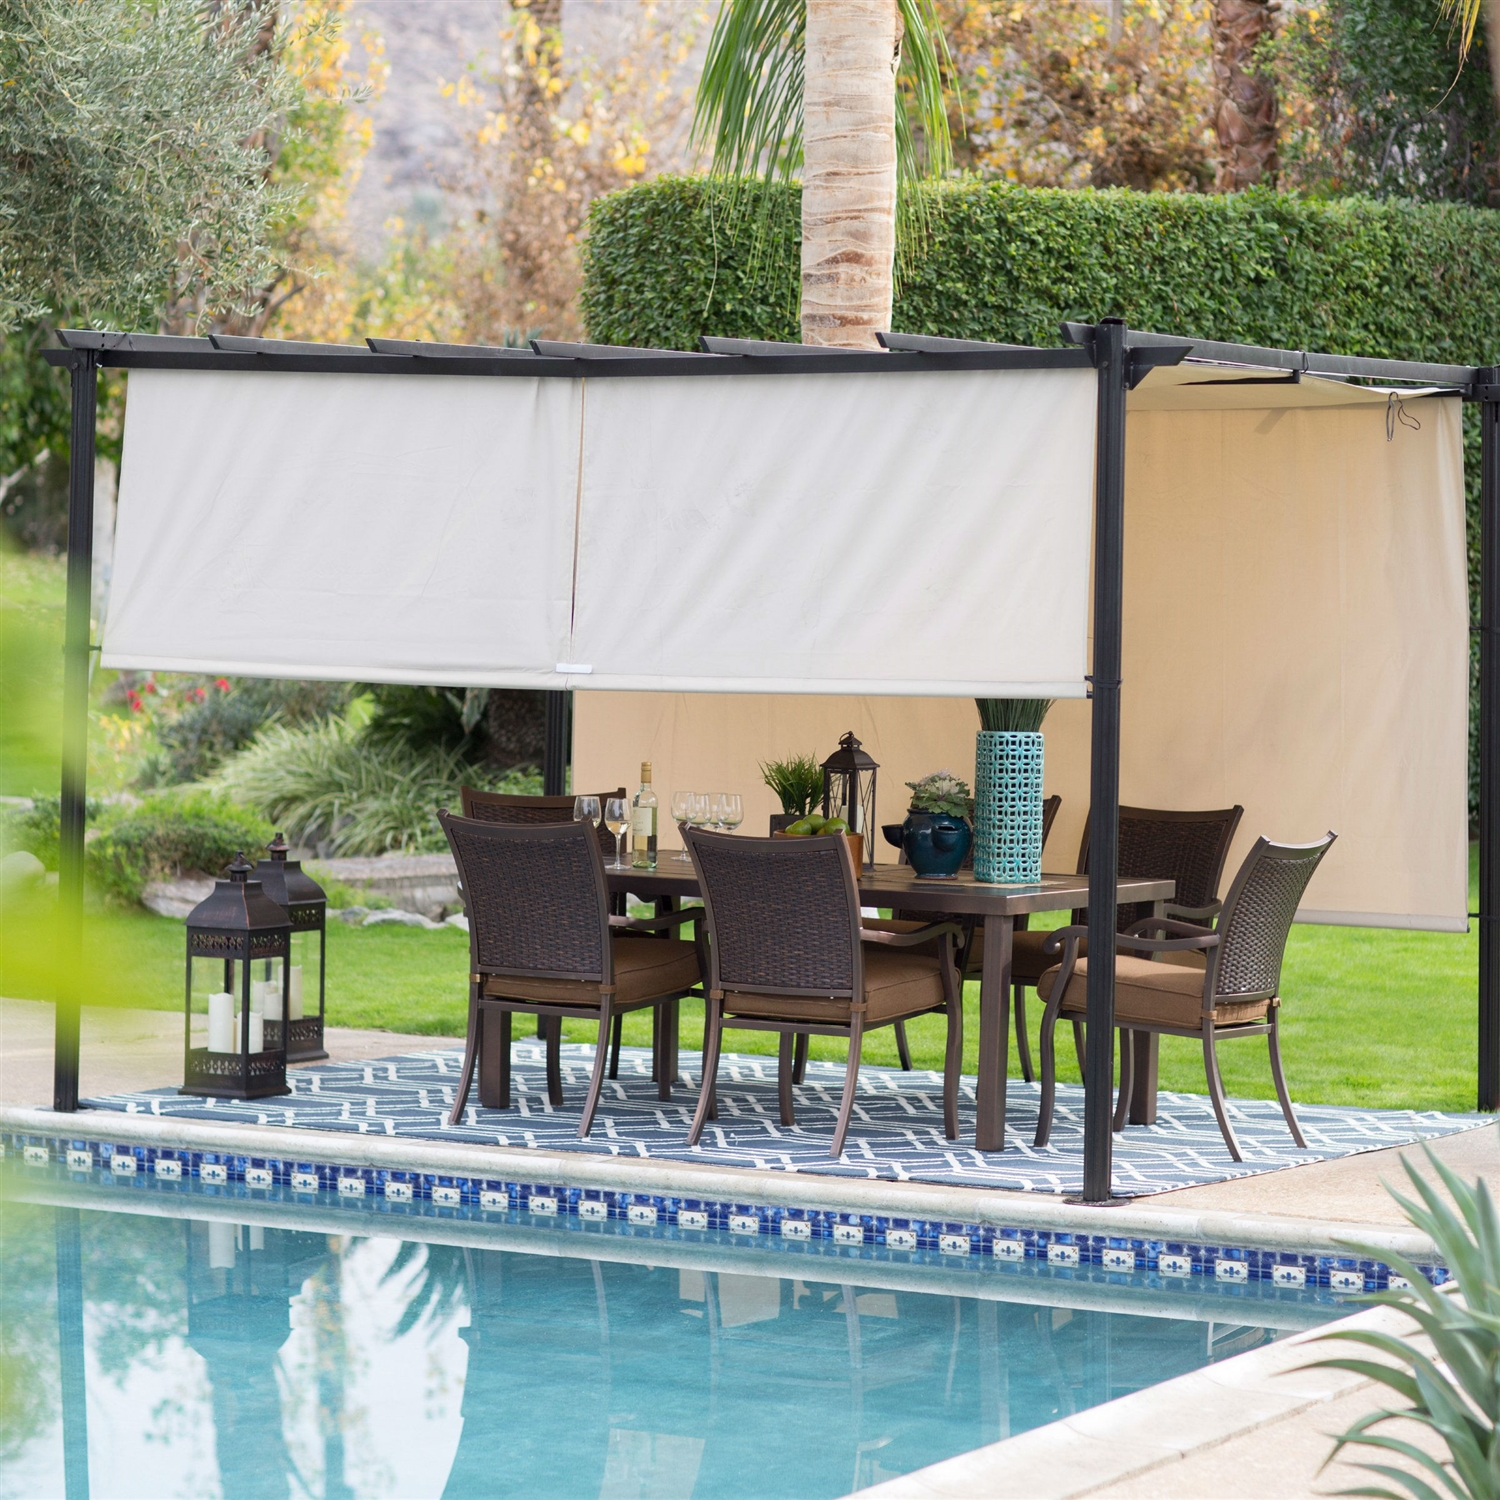 10 Ft X 12 Ft Dark Brown Steel Metal Pergola Outdoor Gazebo With Retractable Ivory Shade Canopy Fastfurnishings Com